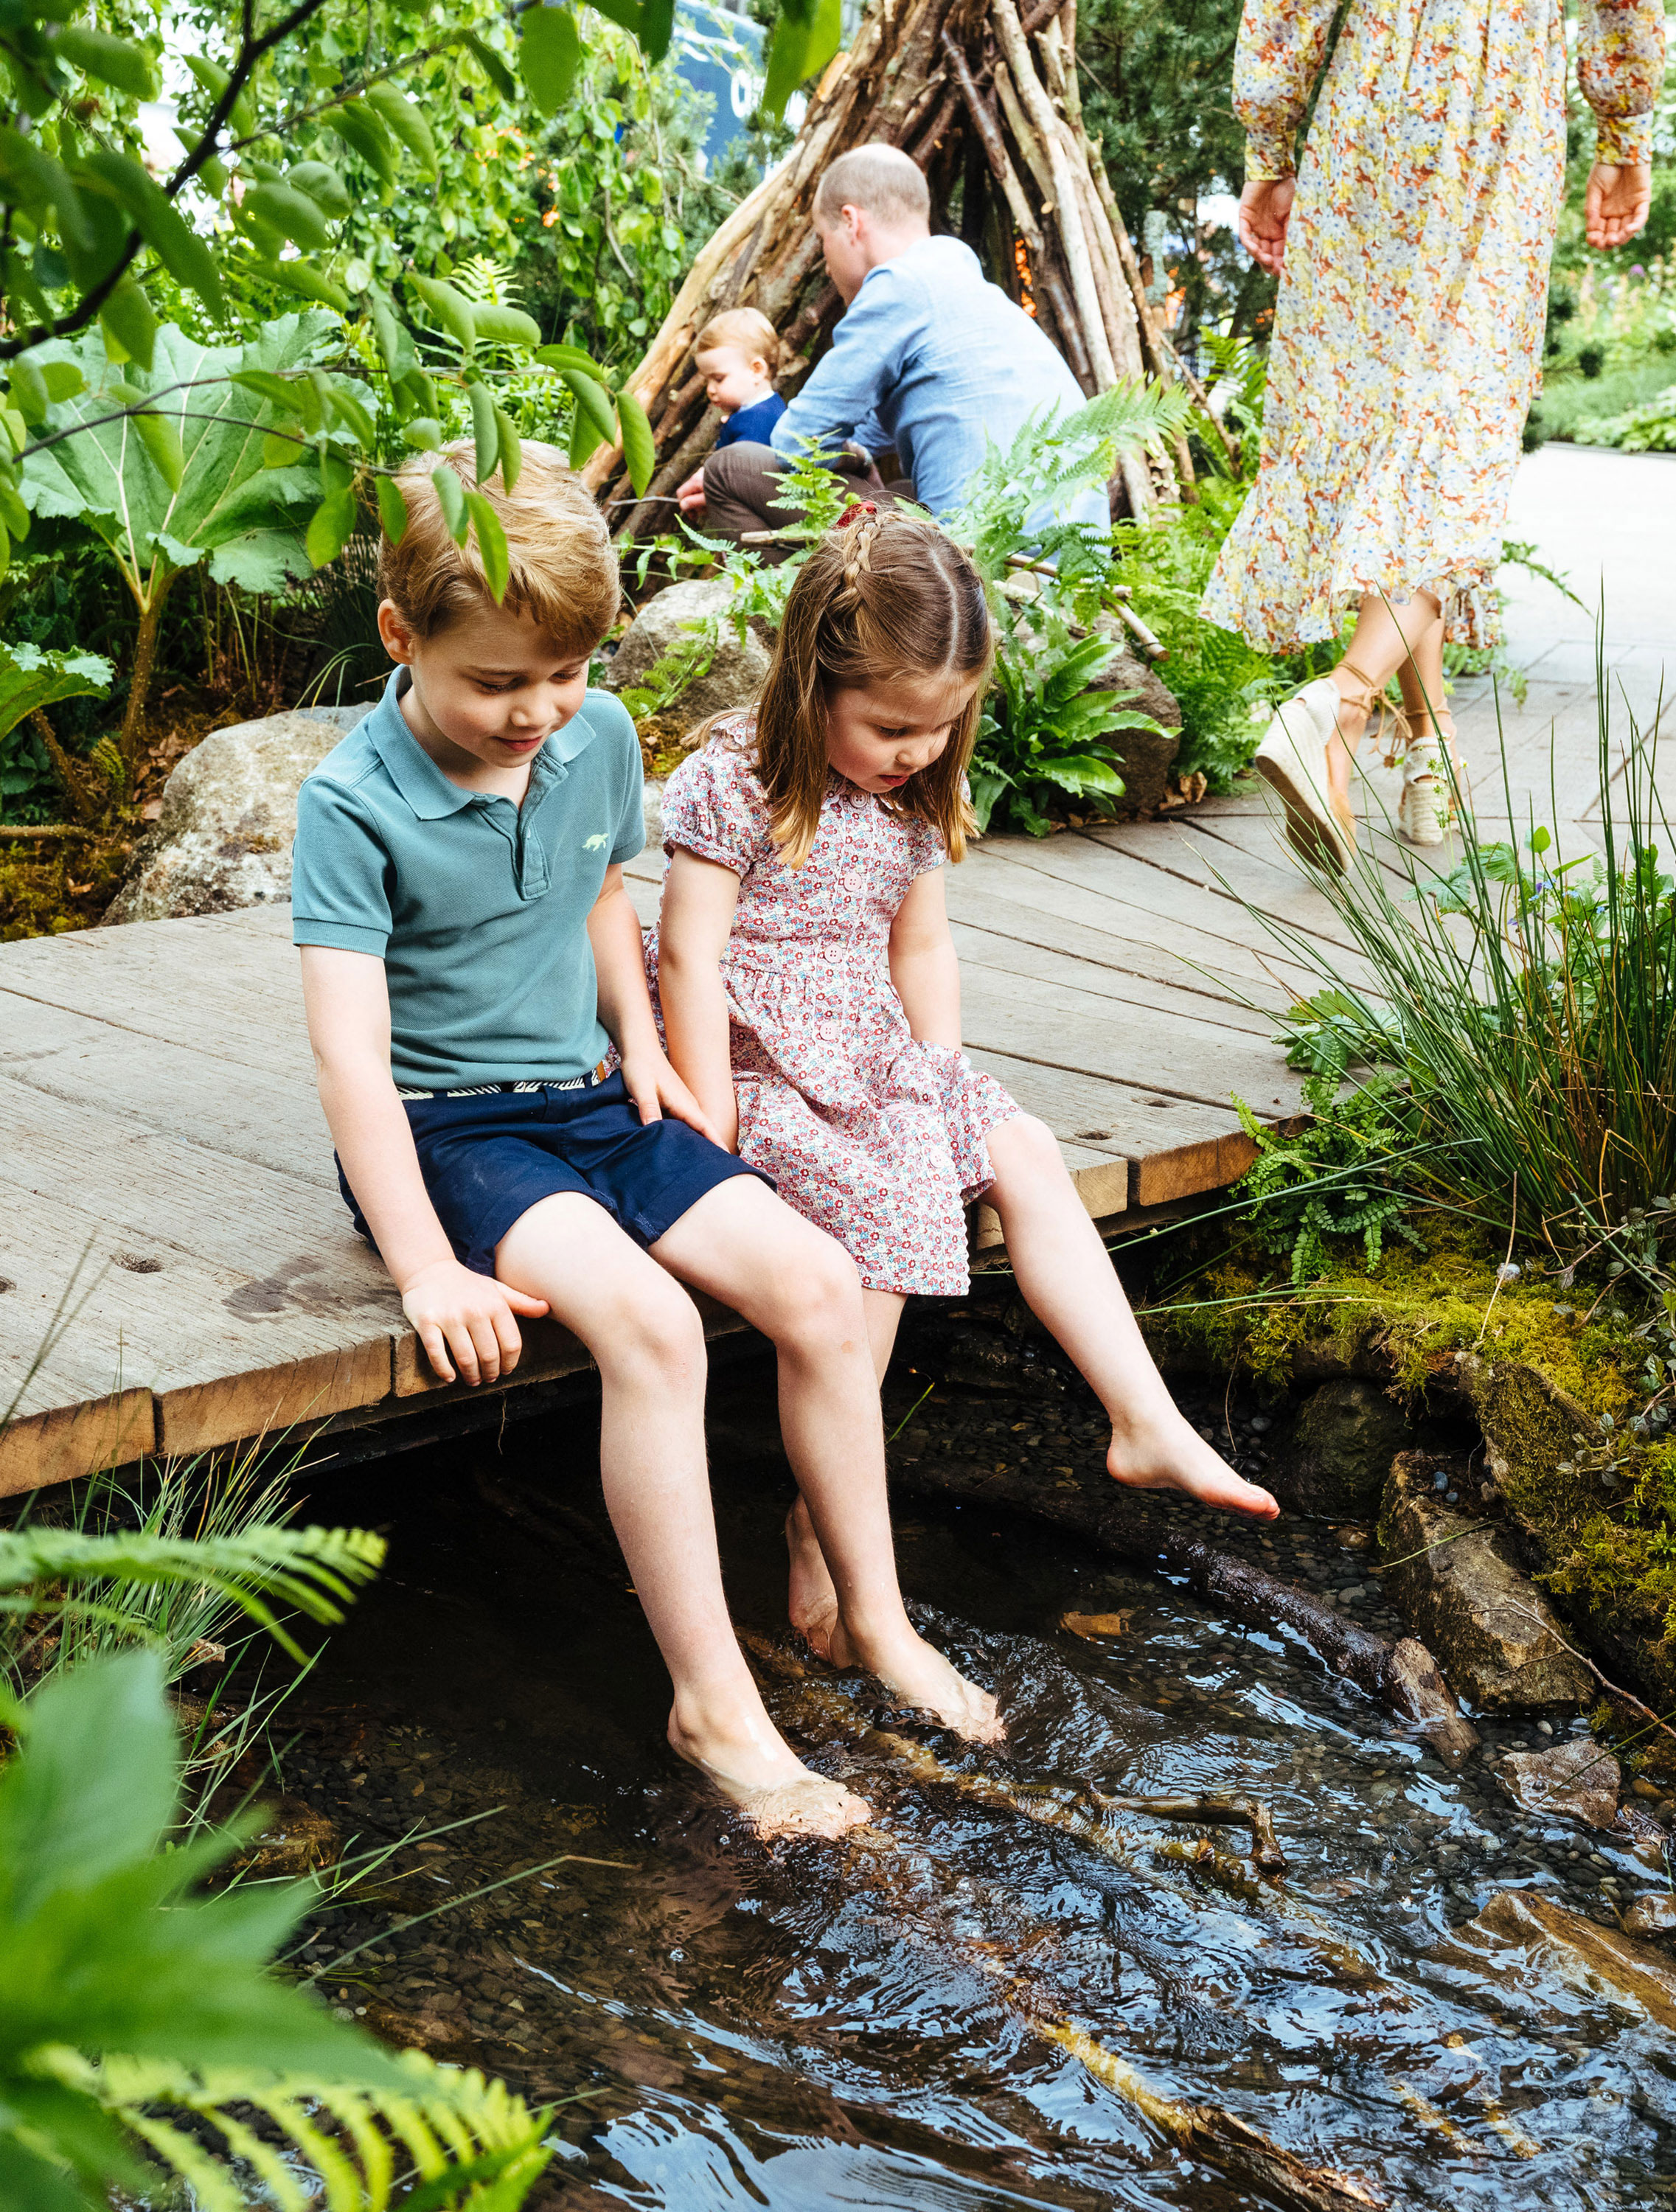 Prince William, Duchess Kate and Kids Play in the Garden She Designed at Chelsea Flower Show - George and Charlotte took off their shoes and dangled their feet in the stream.